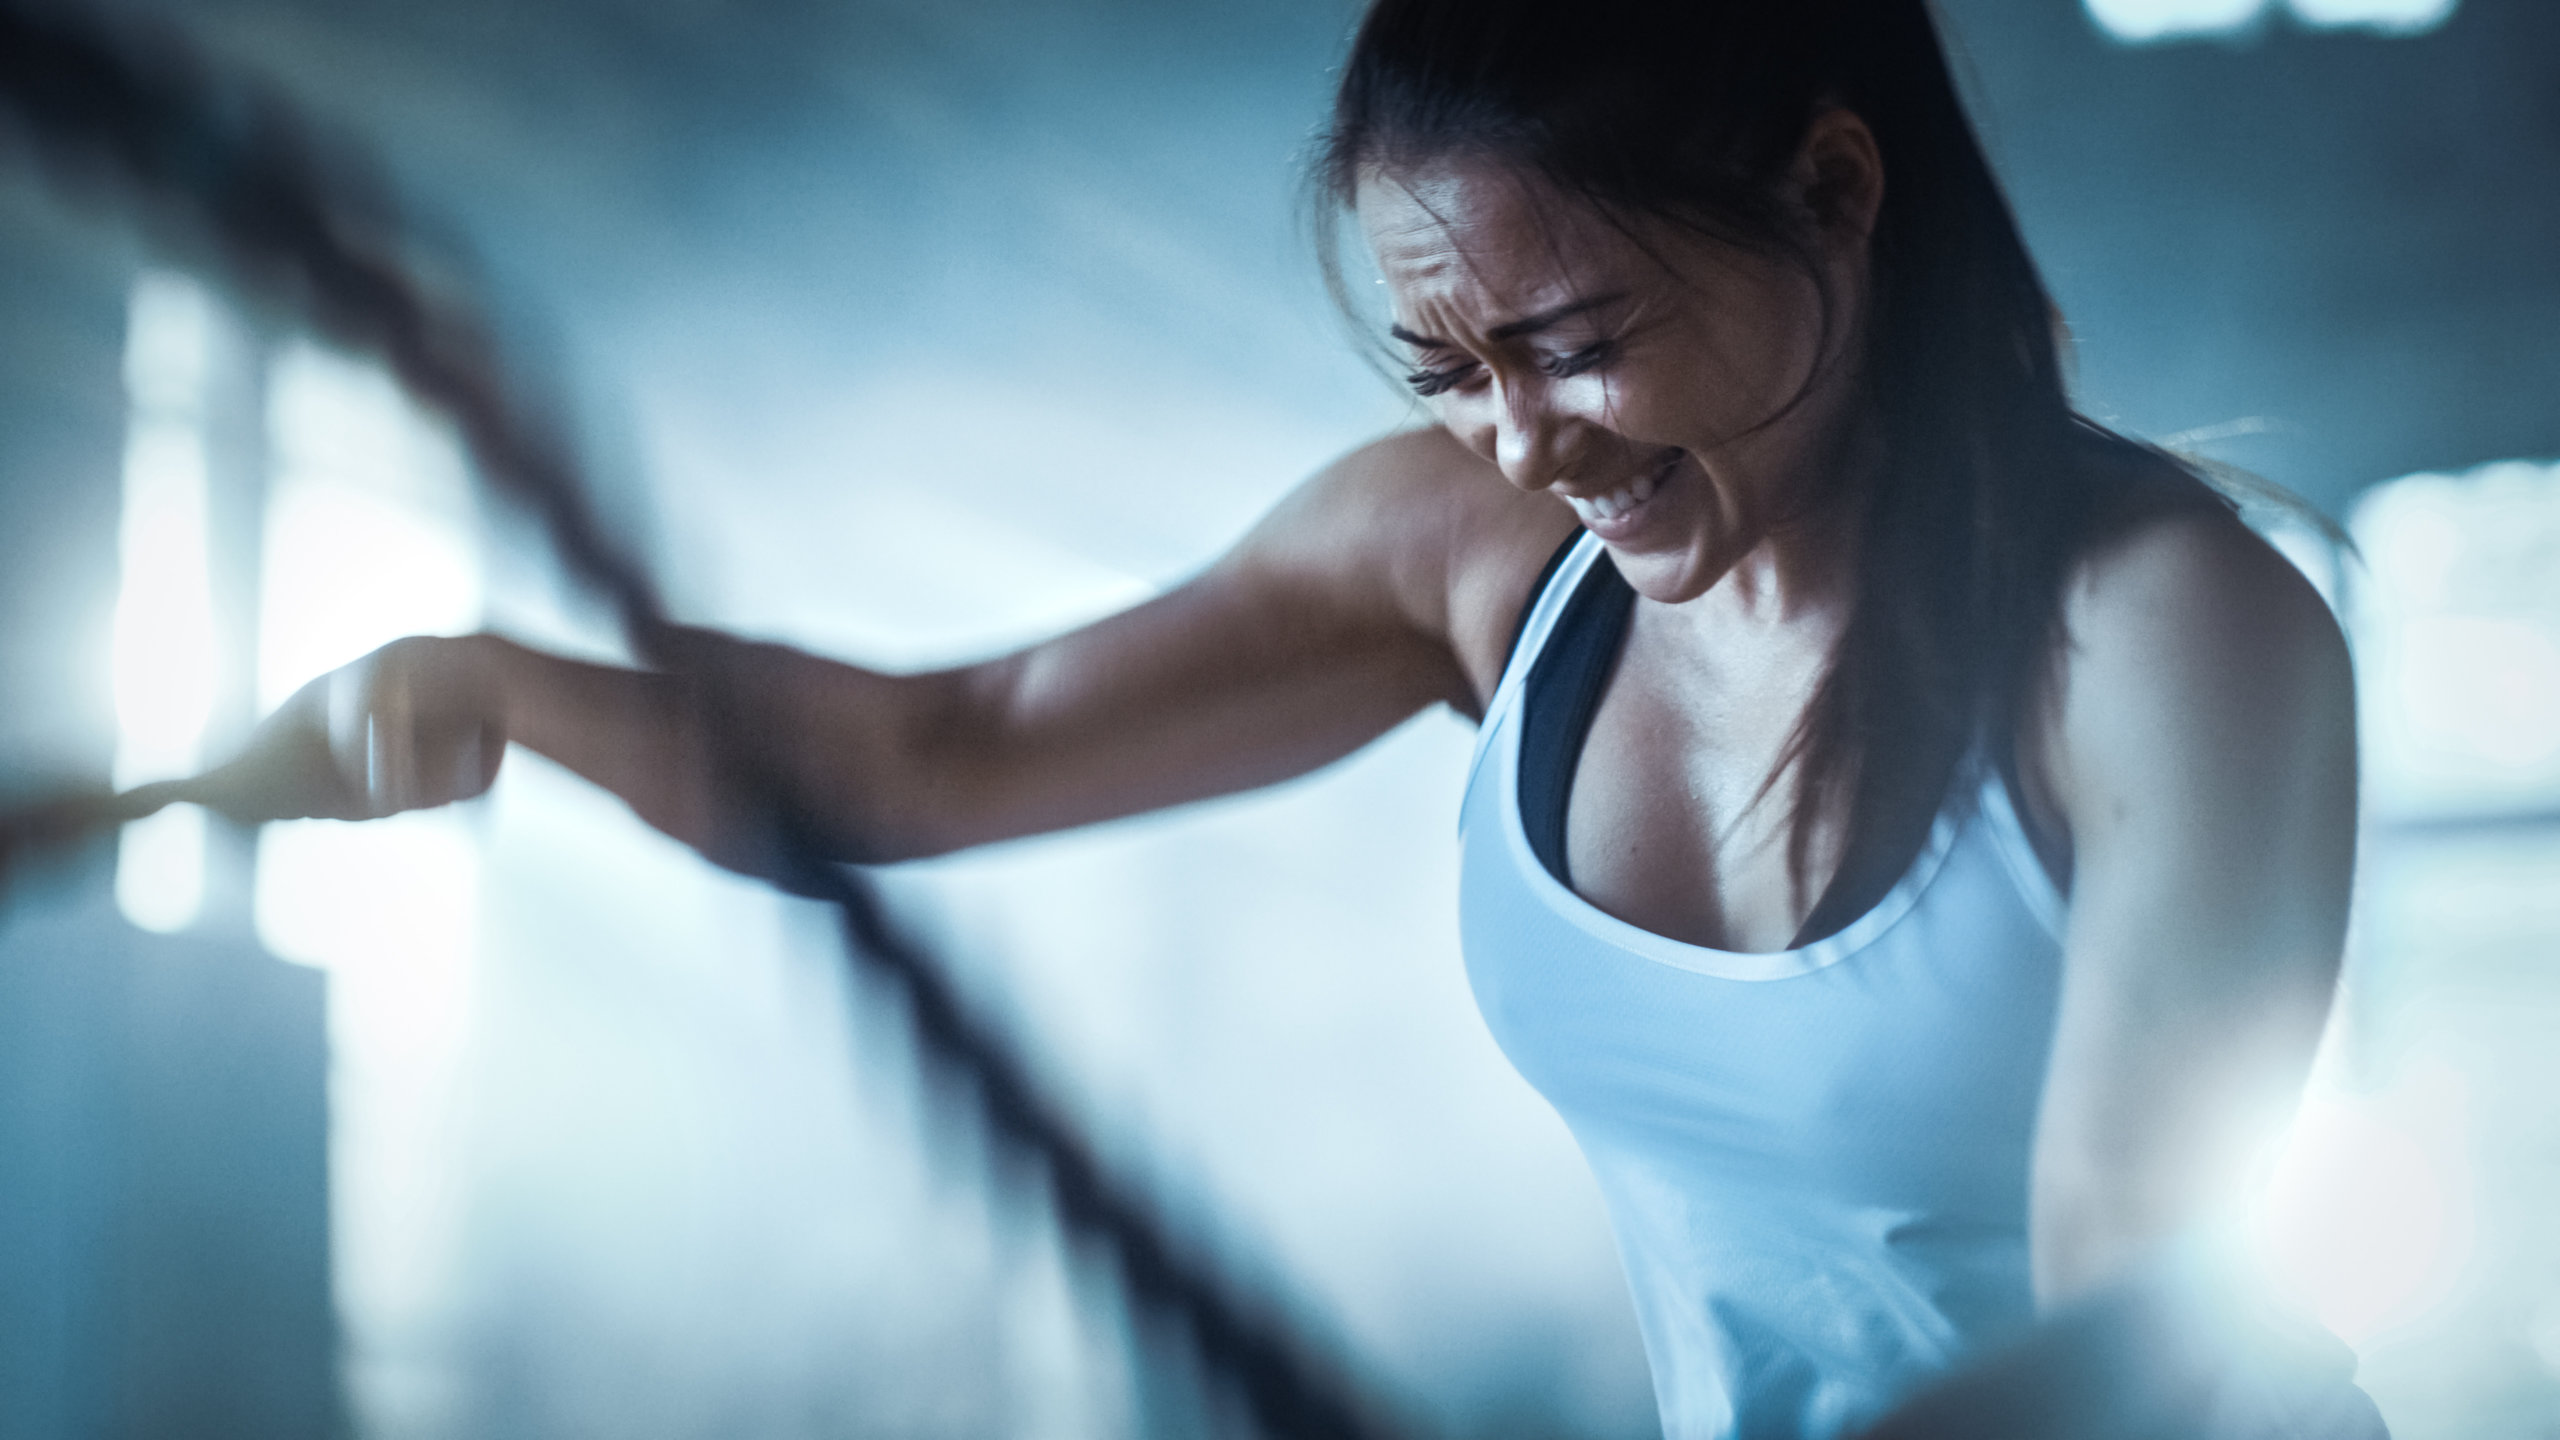 Take it easy! Too much strenuous exercise may shorten your lifespan, study suggests